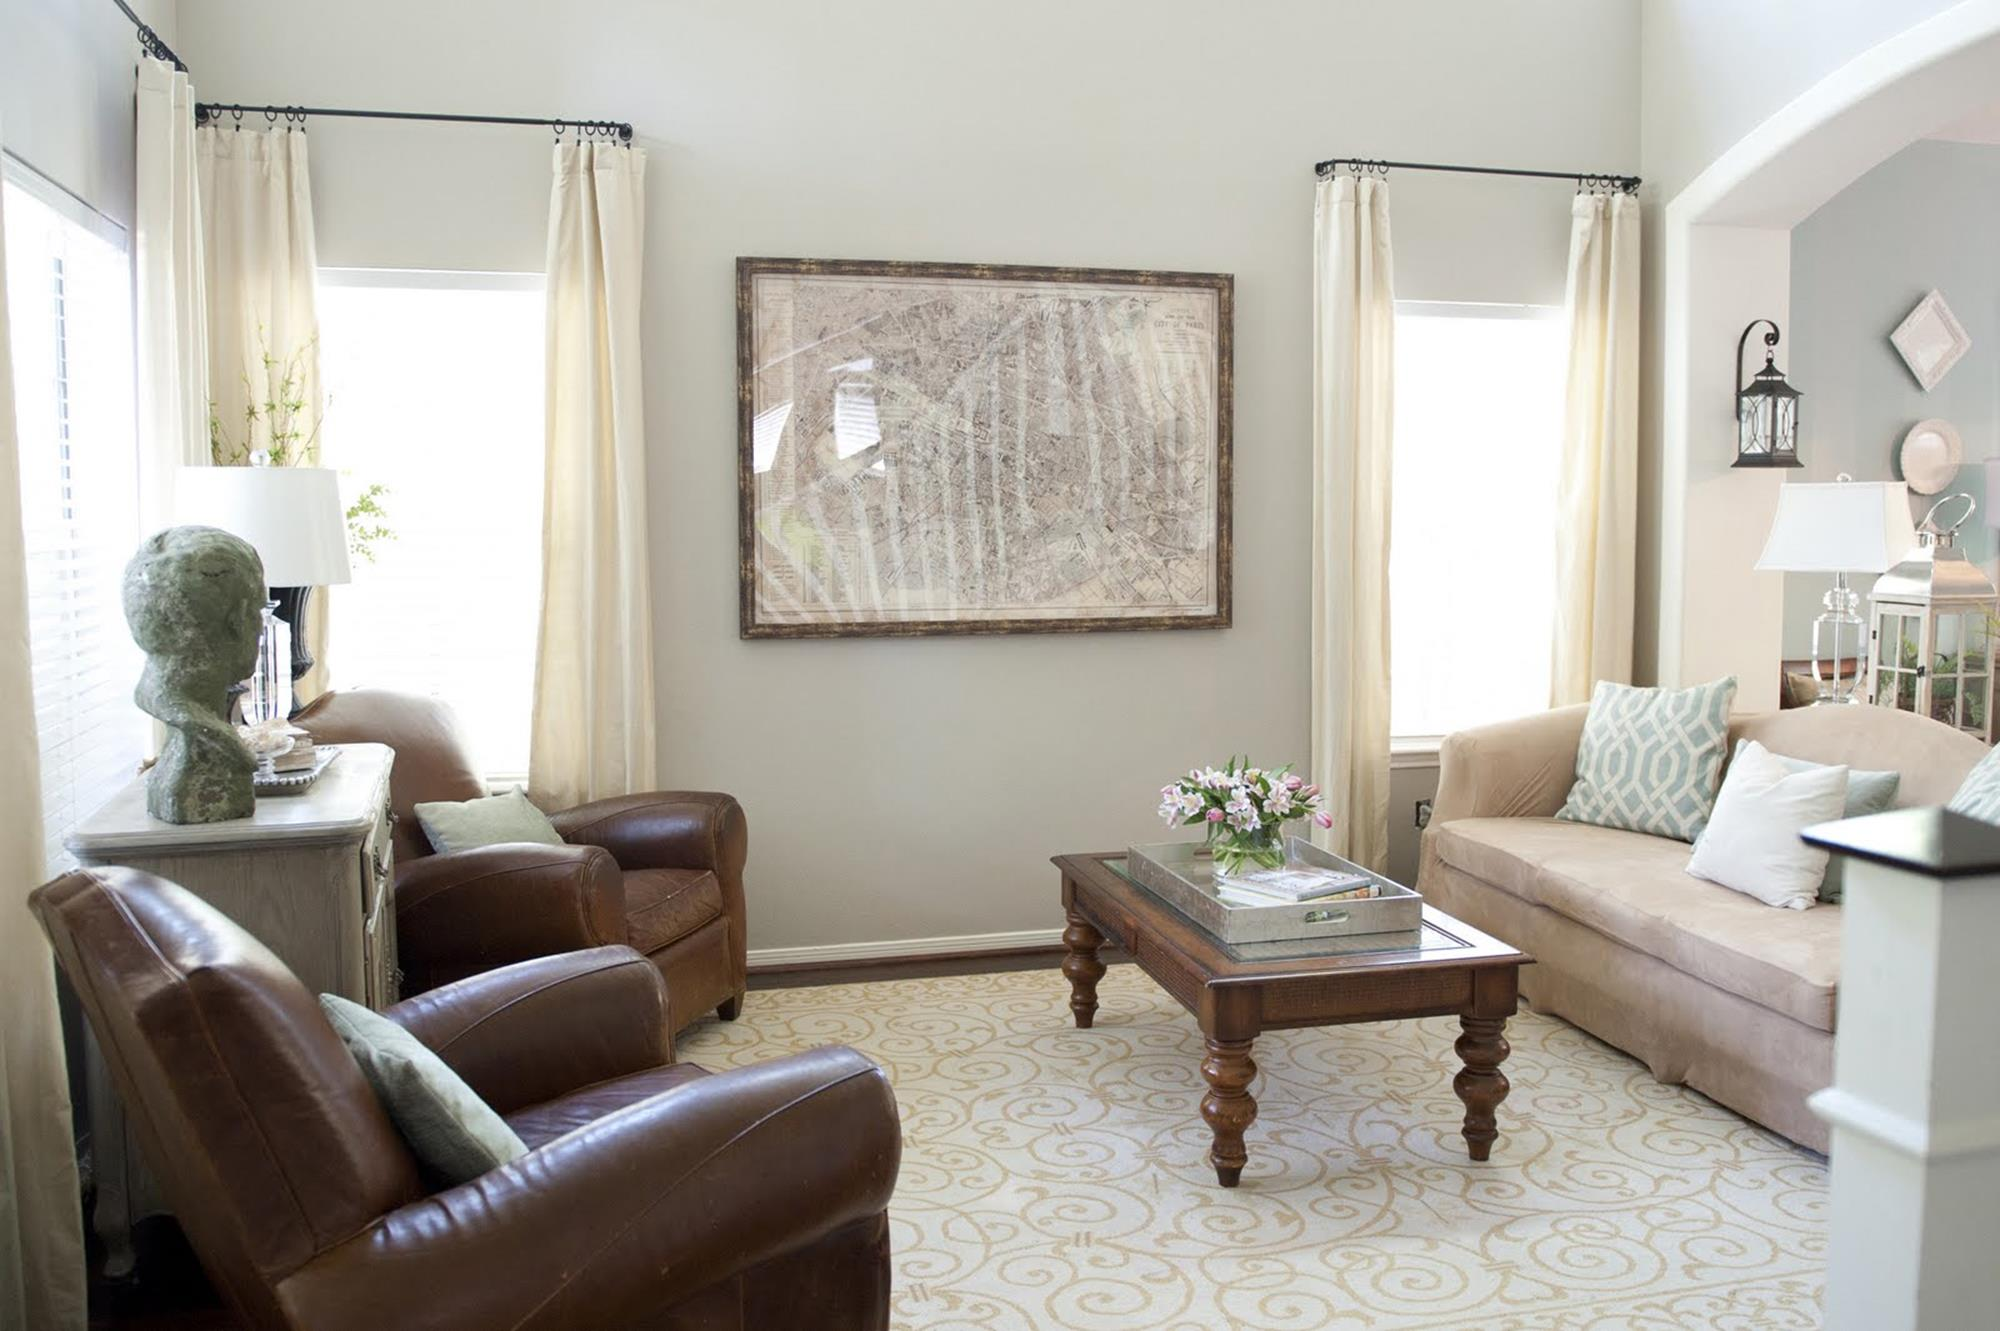 Best Neutral Paint Colors For Living Room 35